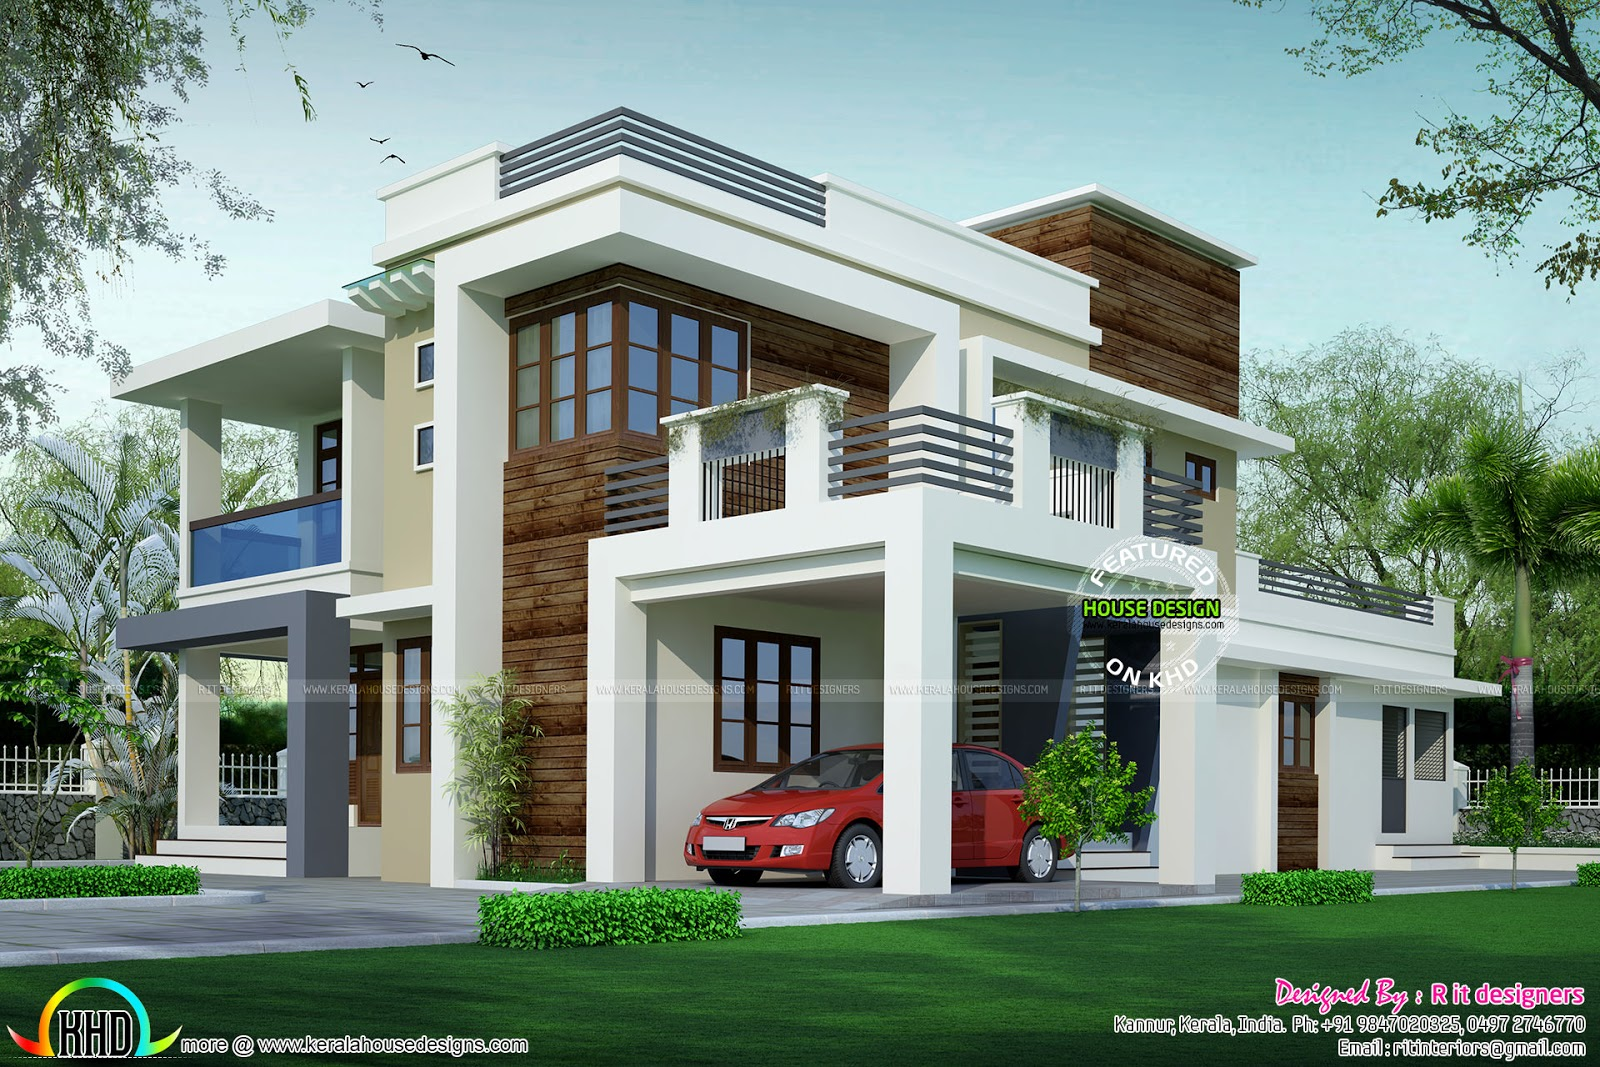 House design contemporary model kerala home design and for Houses models